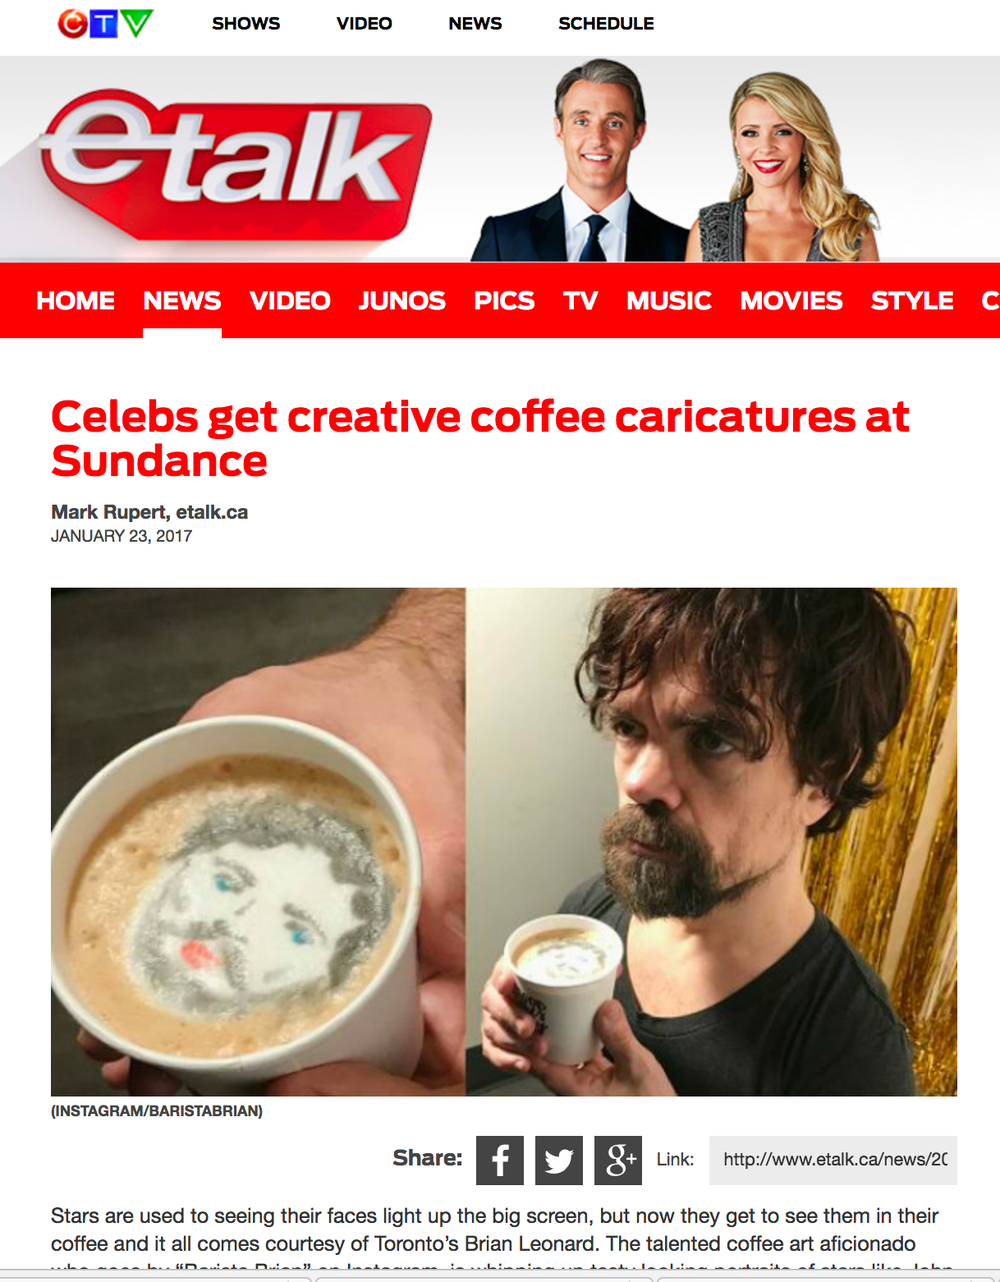 Celebs_get_creative_coffee_caricatures_at_Sundance.png